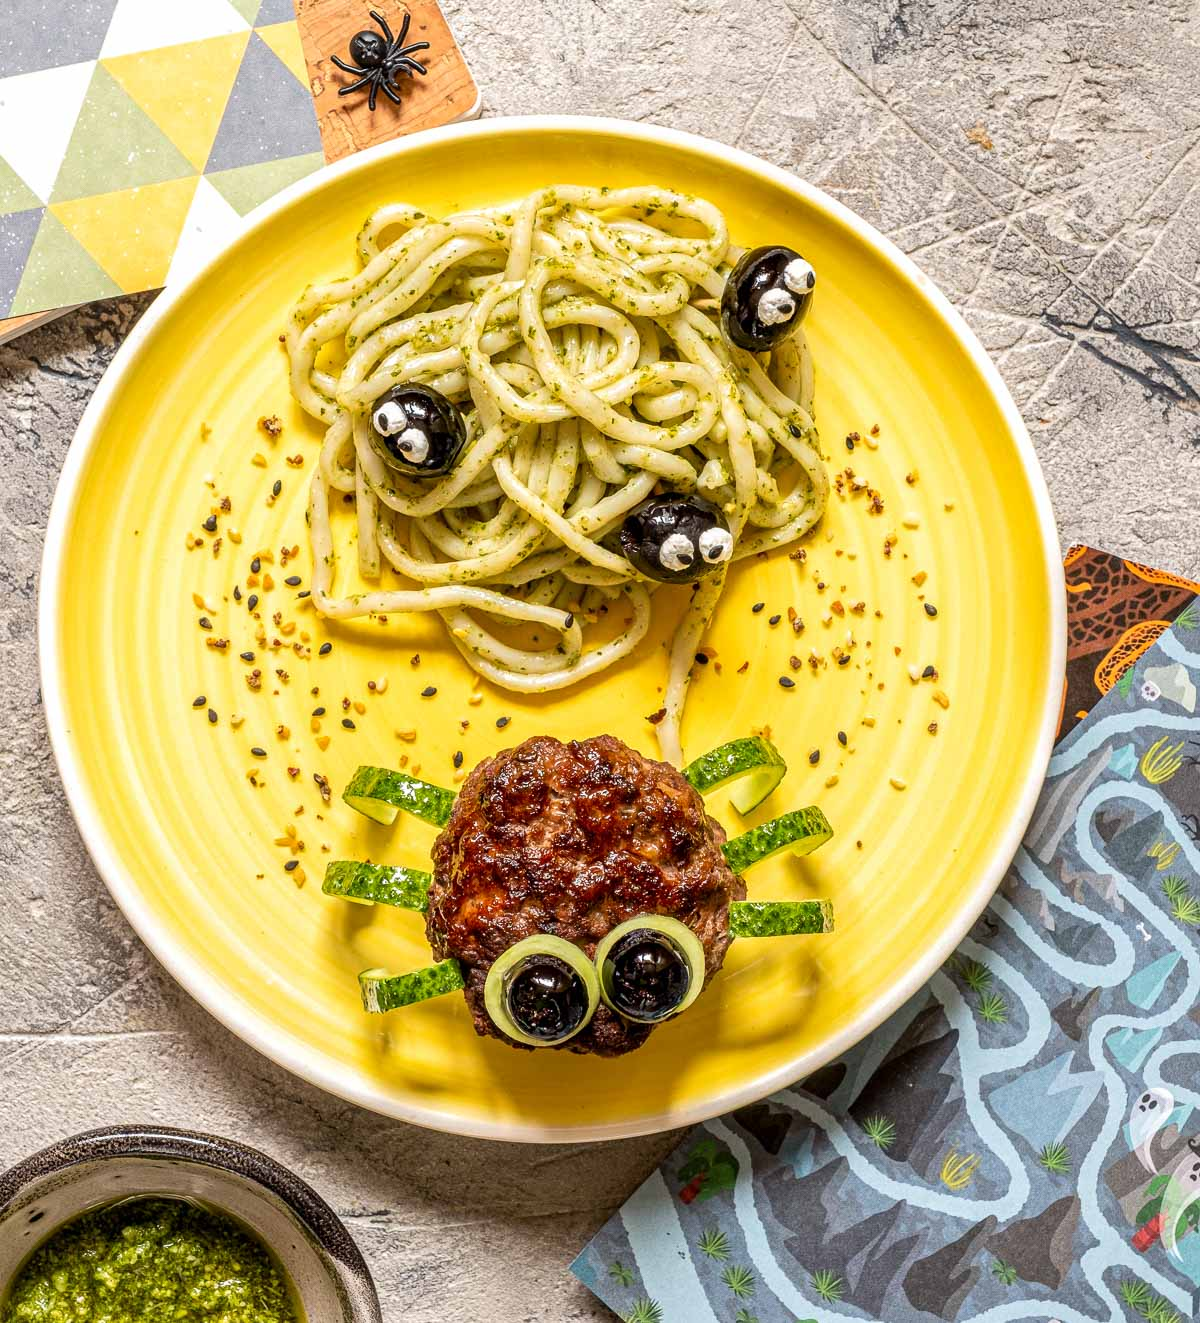 """Overhead view of a plate of spaghetti with pesto sauce (a nest) covered with olives decorated with eyes next to a meatball """"spider"""" with cucumber peel legs"""